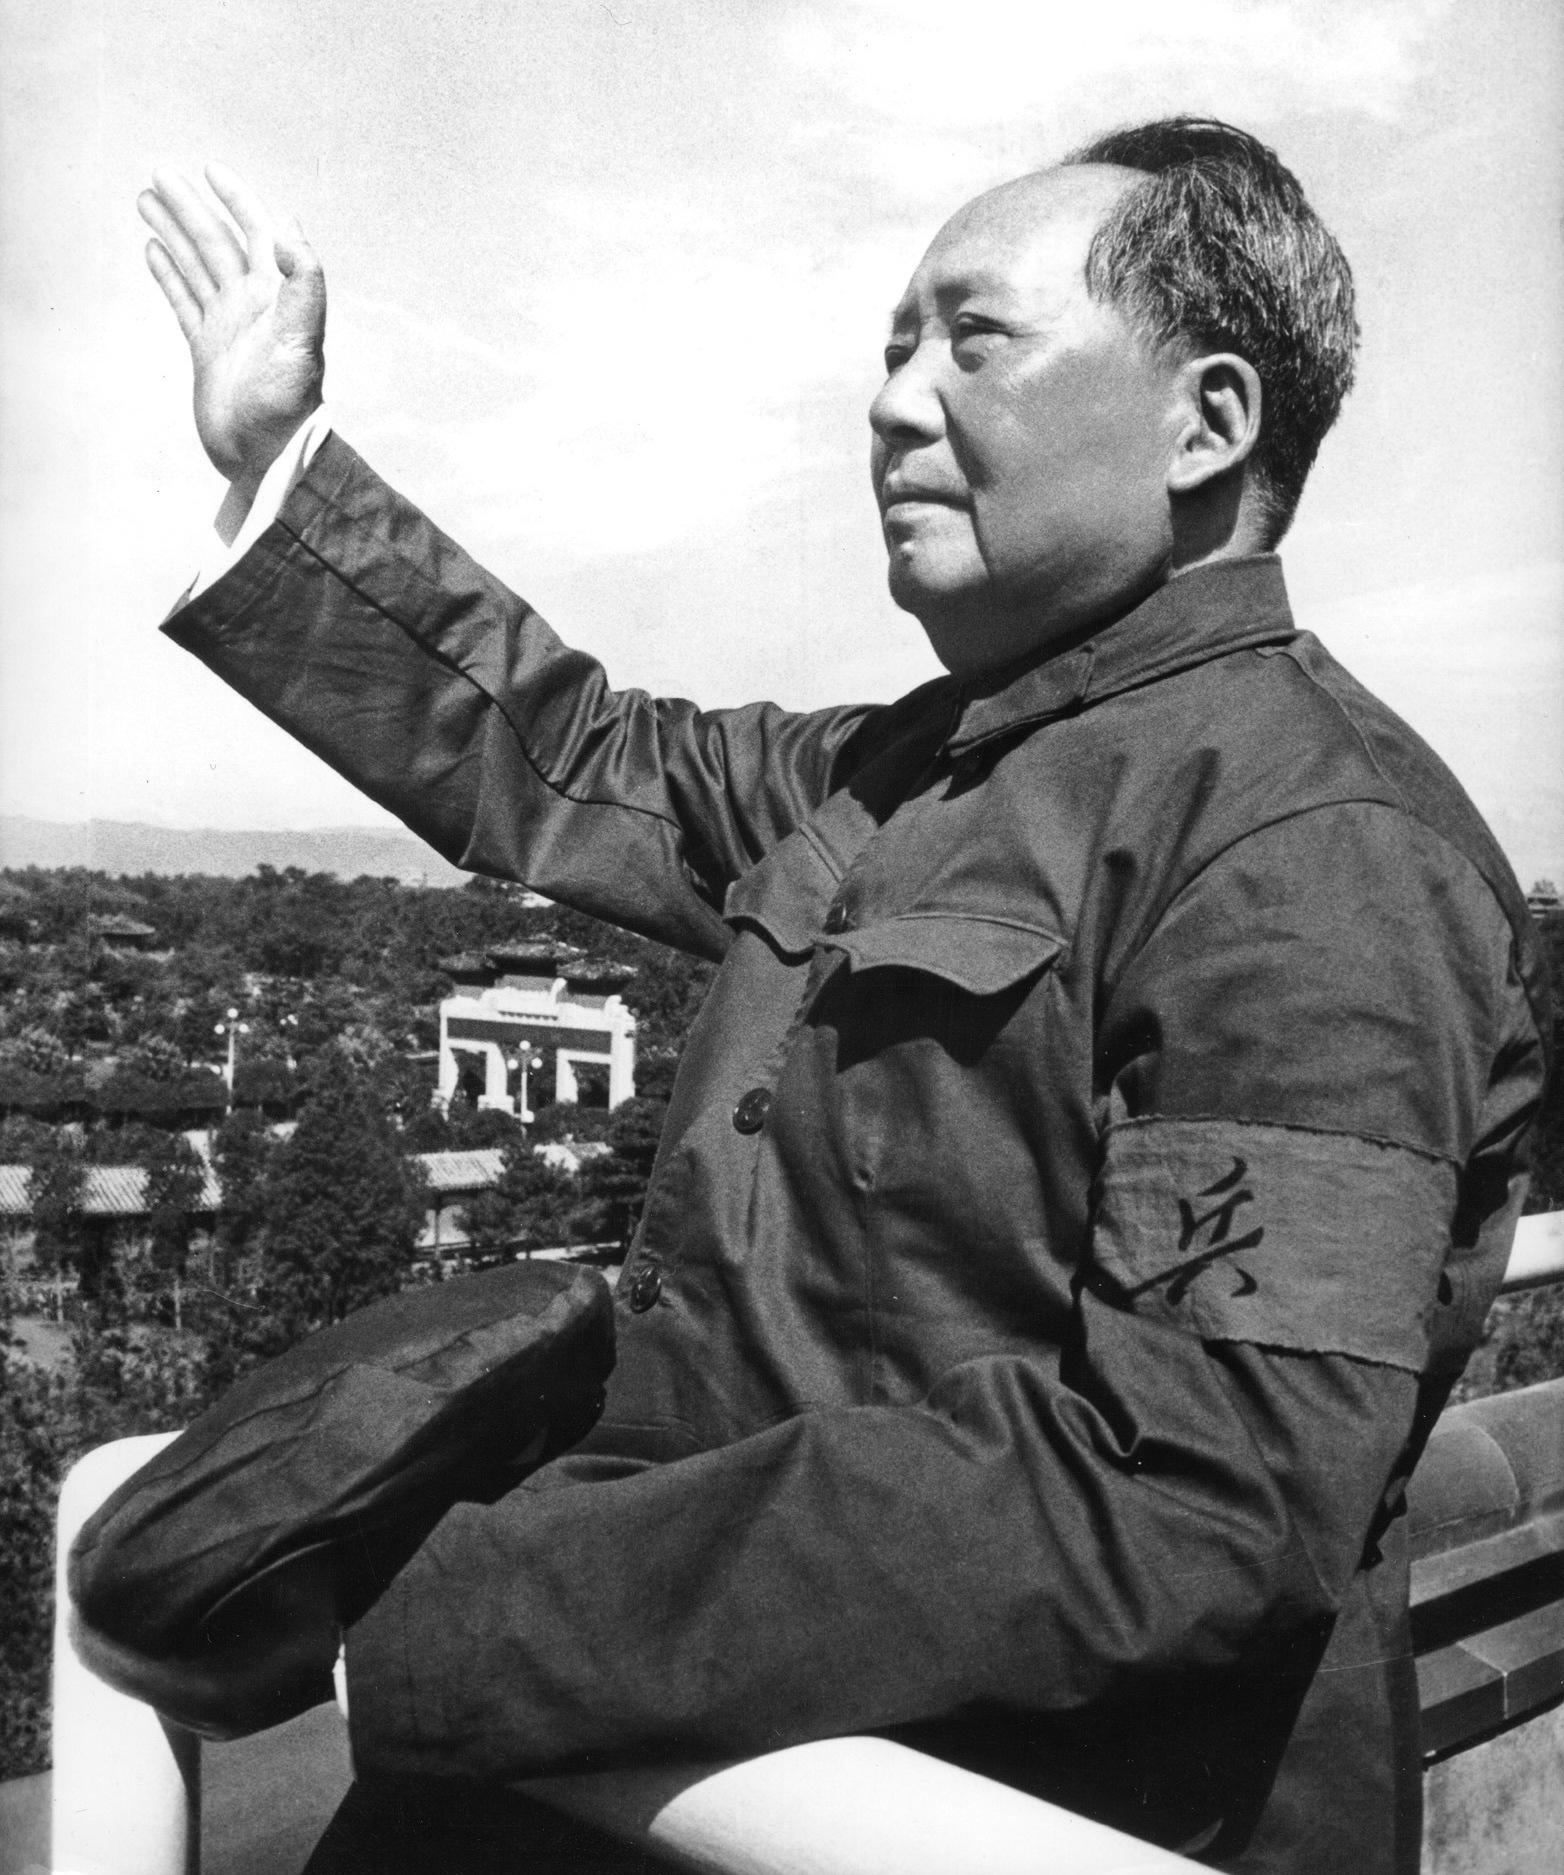 china democracy post mao No one foresaw that the socialist modernization that the post-mao chinese government launched would in 30 years turn into what scholars today have called china's great economic transformation.